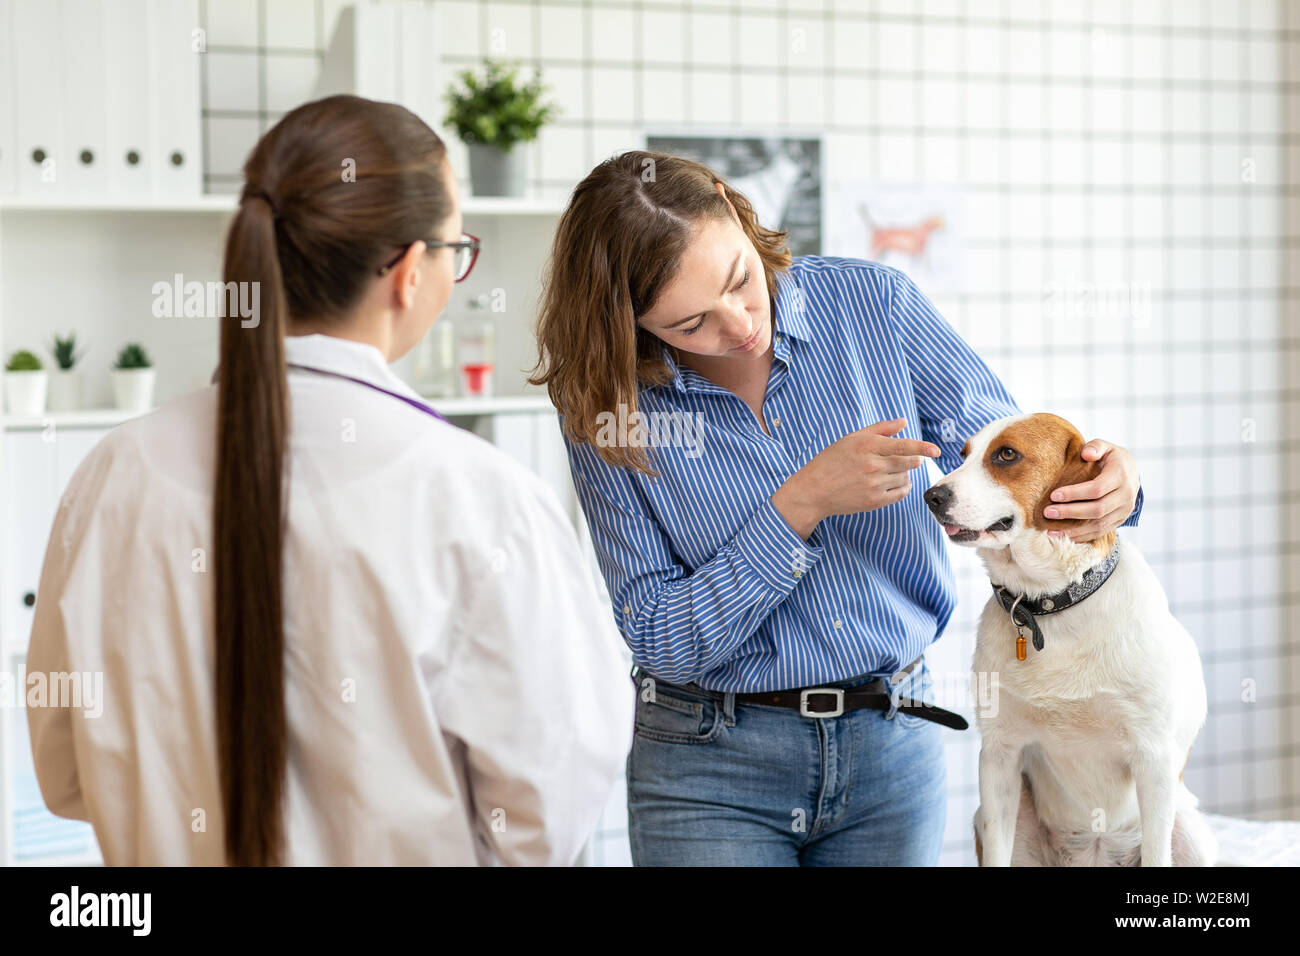 The veterinarian and the client with the dog to discuss the treatment in a veterinary clinic. Stock Photo